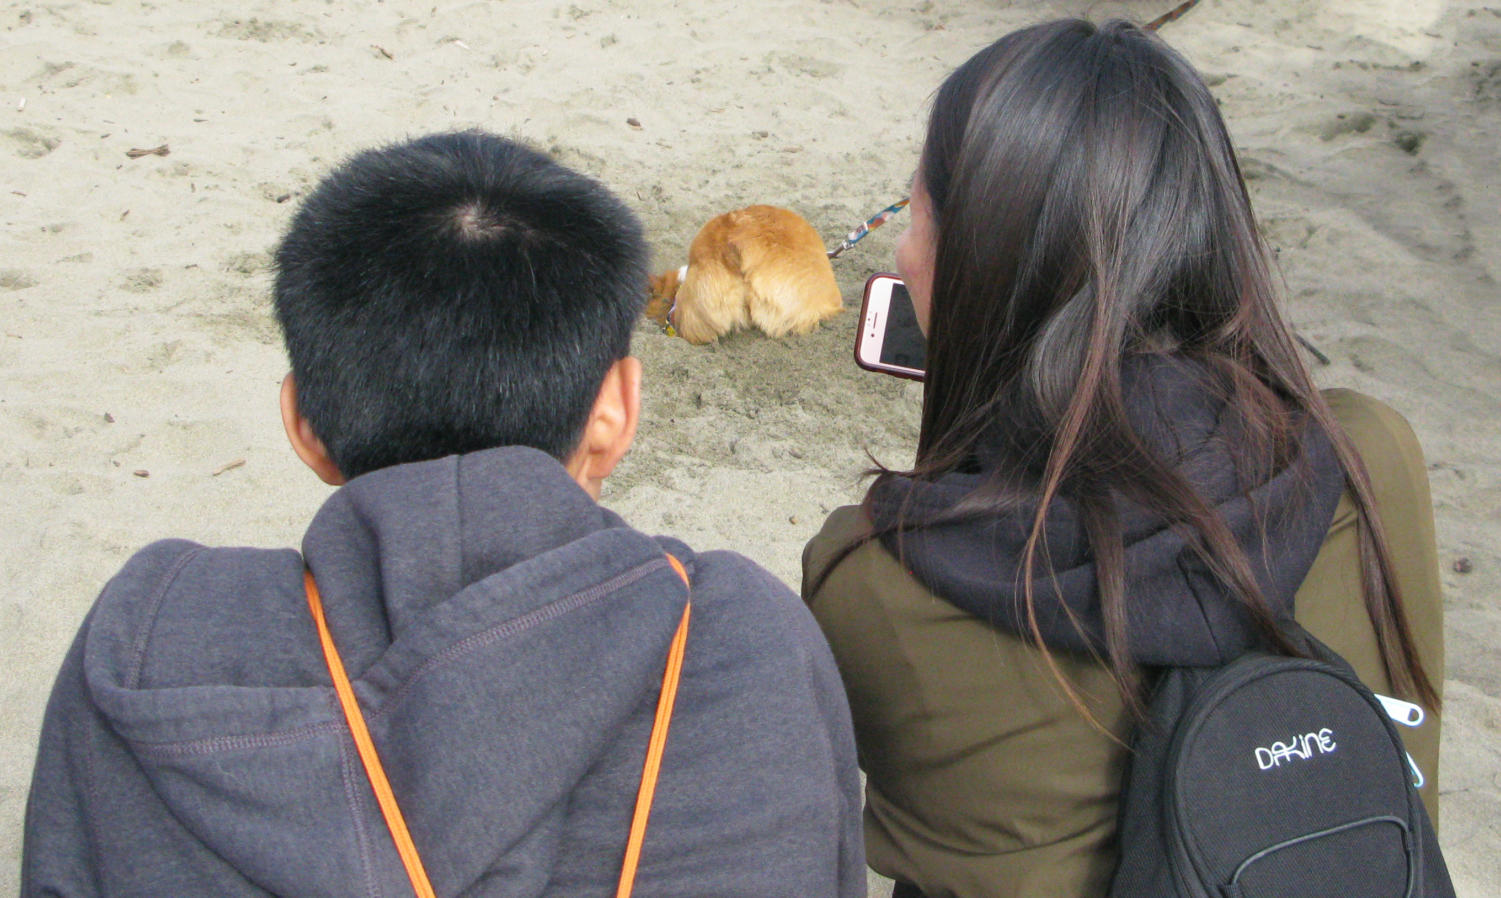 A+couple+takes+a+photo+of+a+corgi+as+it+digs+a+hole+in+the+sand.